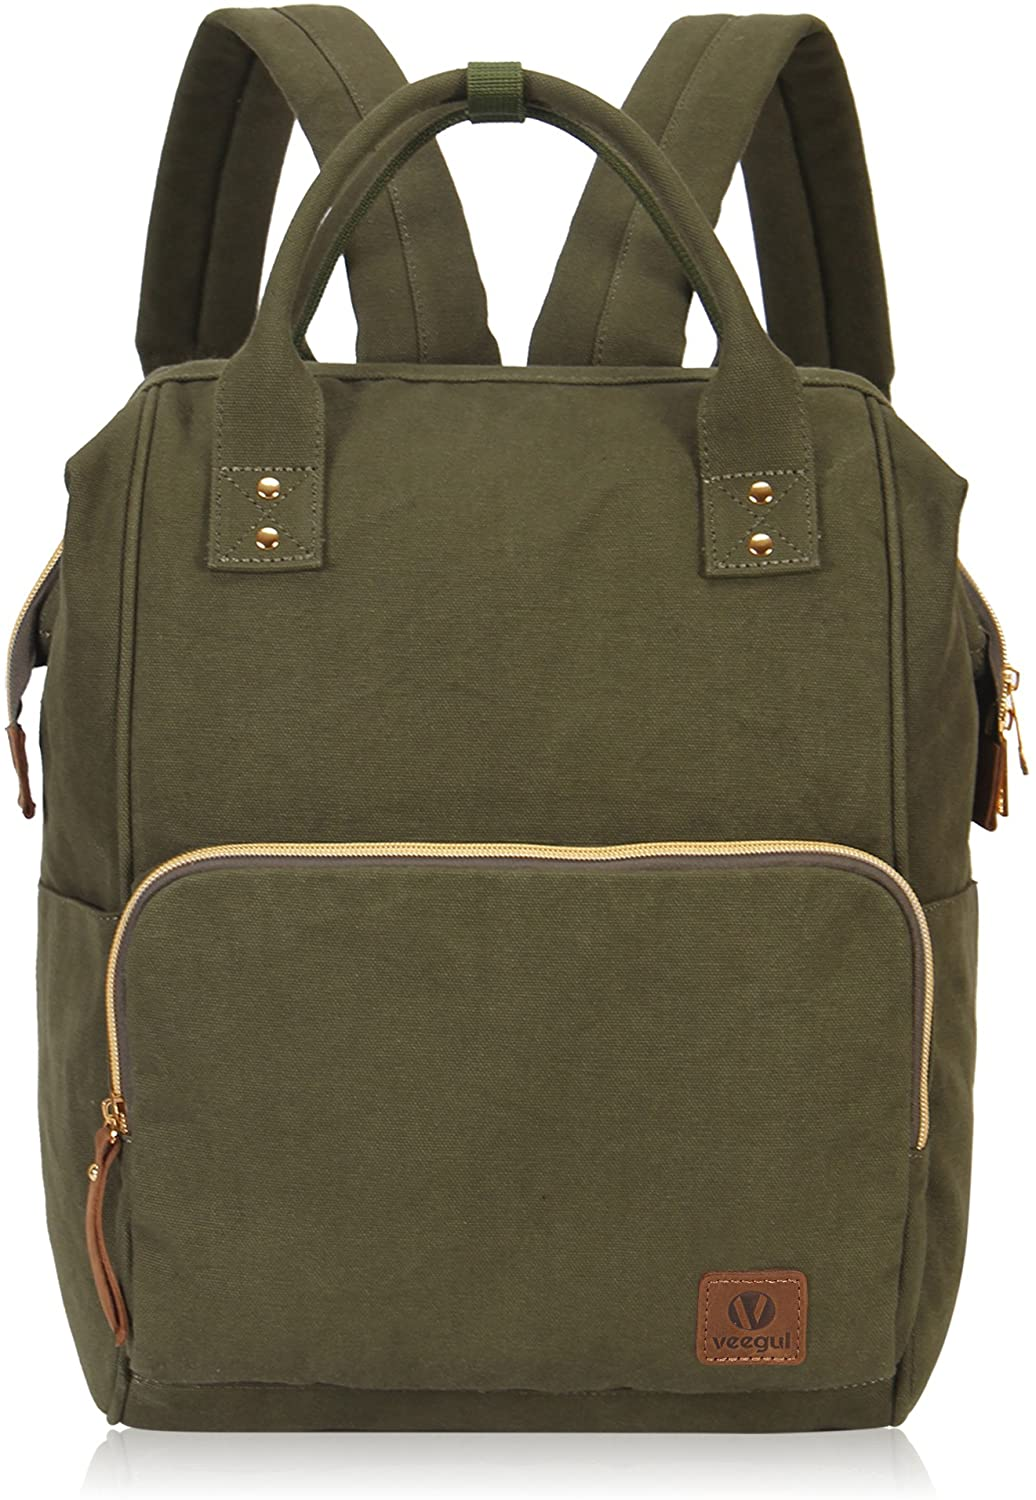 Veegul Stylish Doctor Style Multipurpose Travel Backpack Everyday Backpack for Men Women Single Pocket Army Green